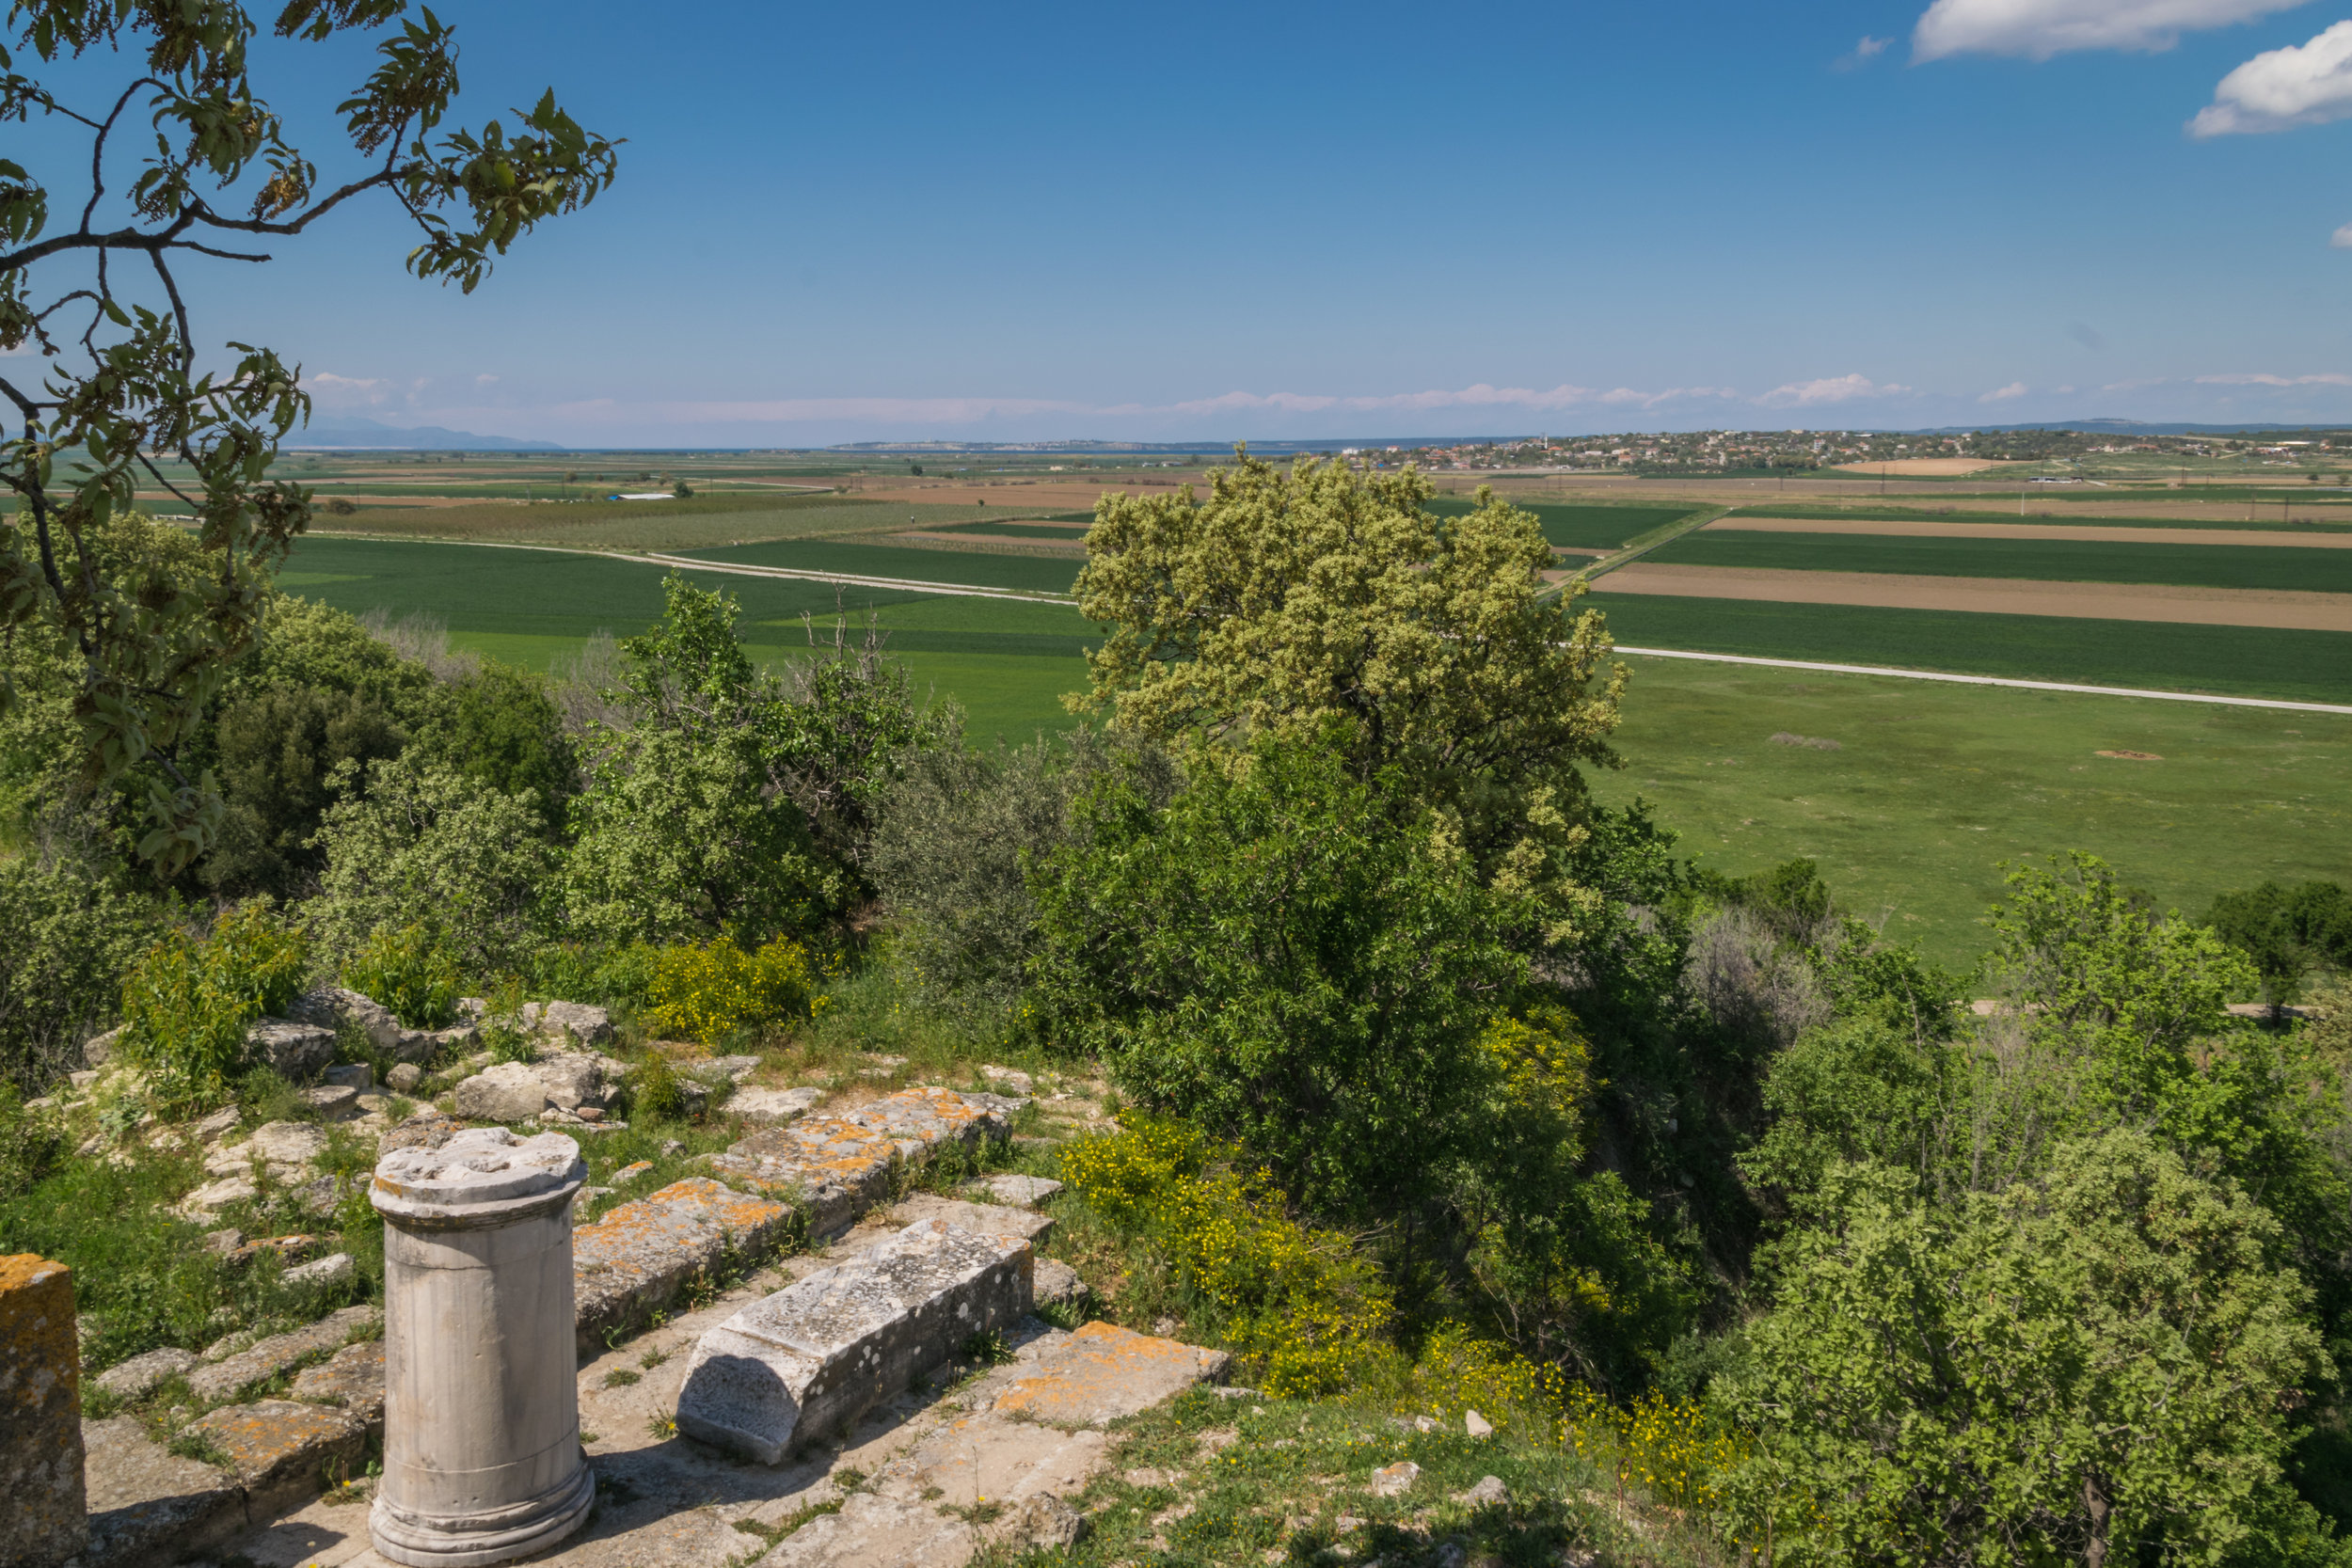 site of temple of Athena; fertile land where water once stood